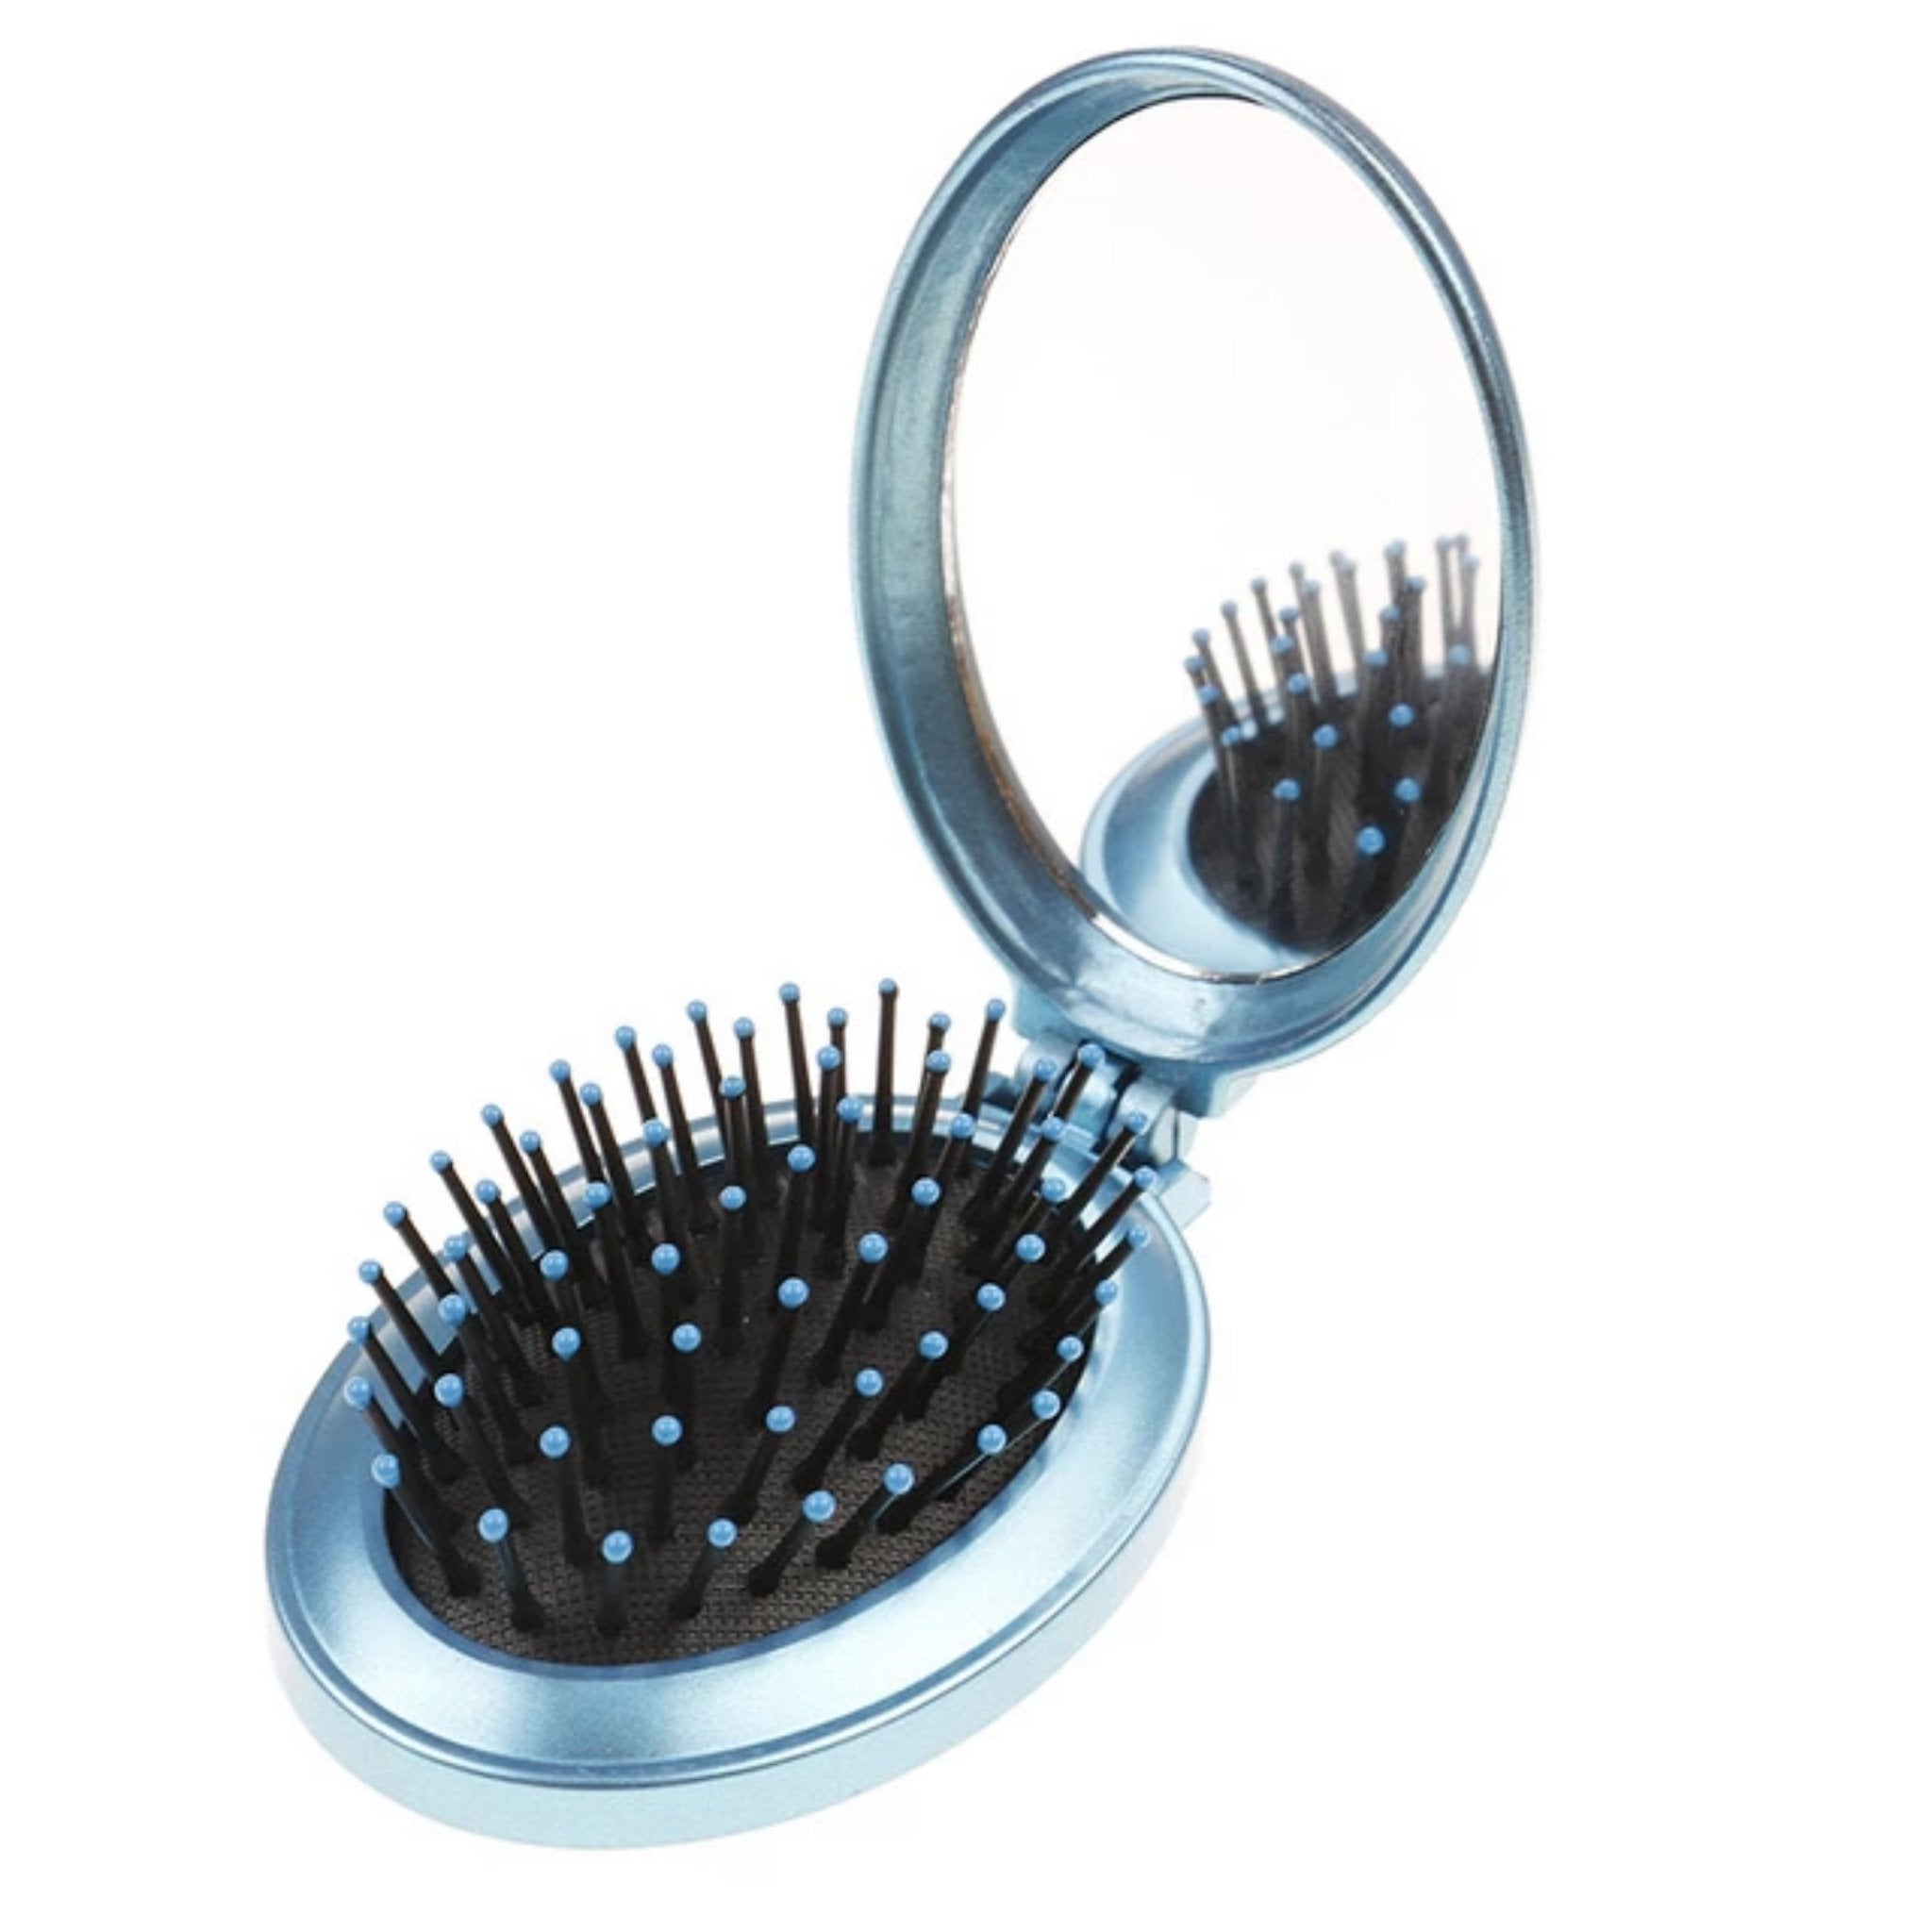 NEW Mini Portable Travel Massage Round Hair Brush - Fresh Hair Extensions and Accessories